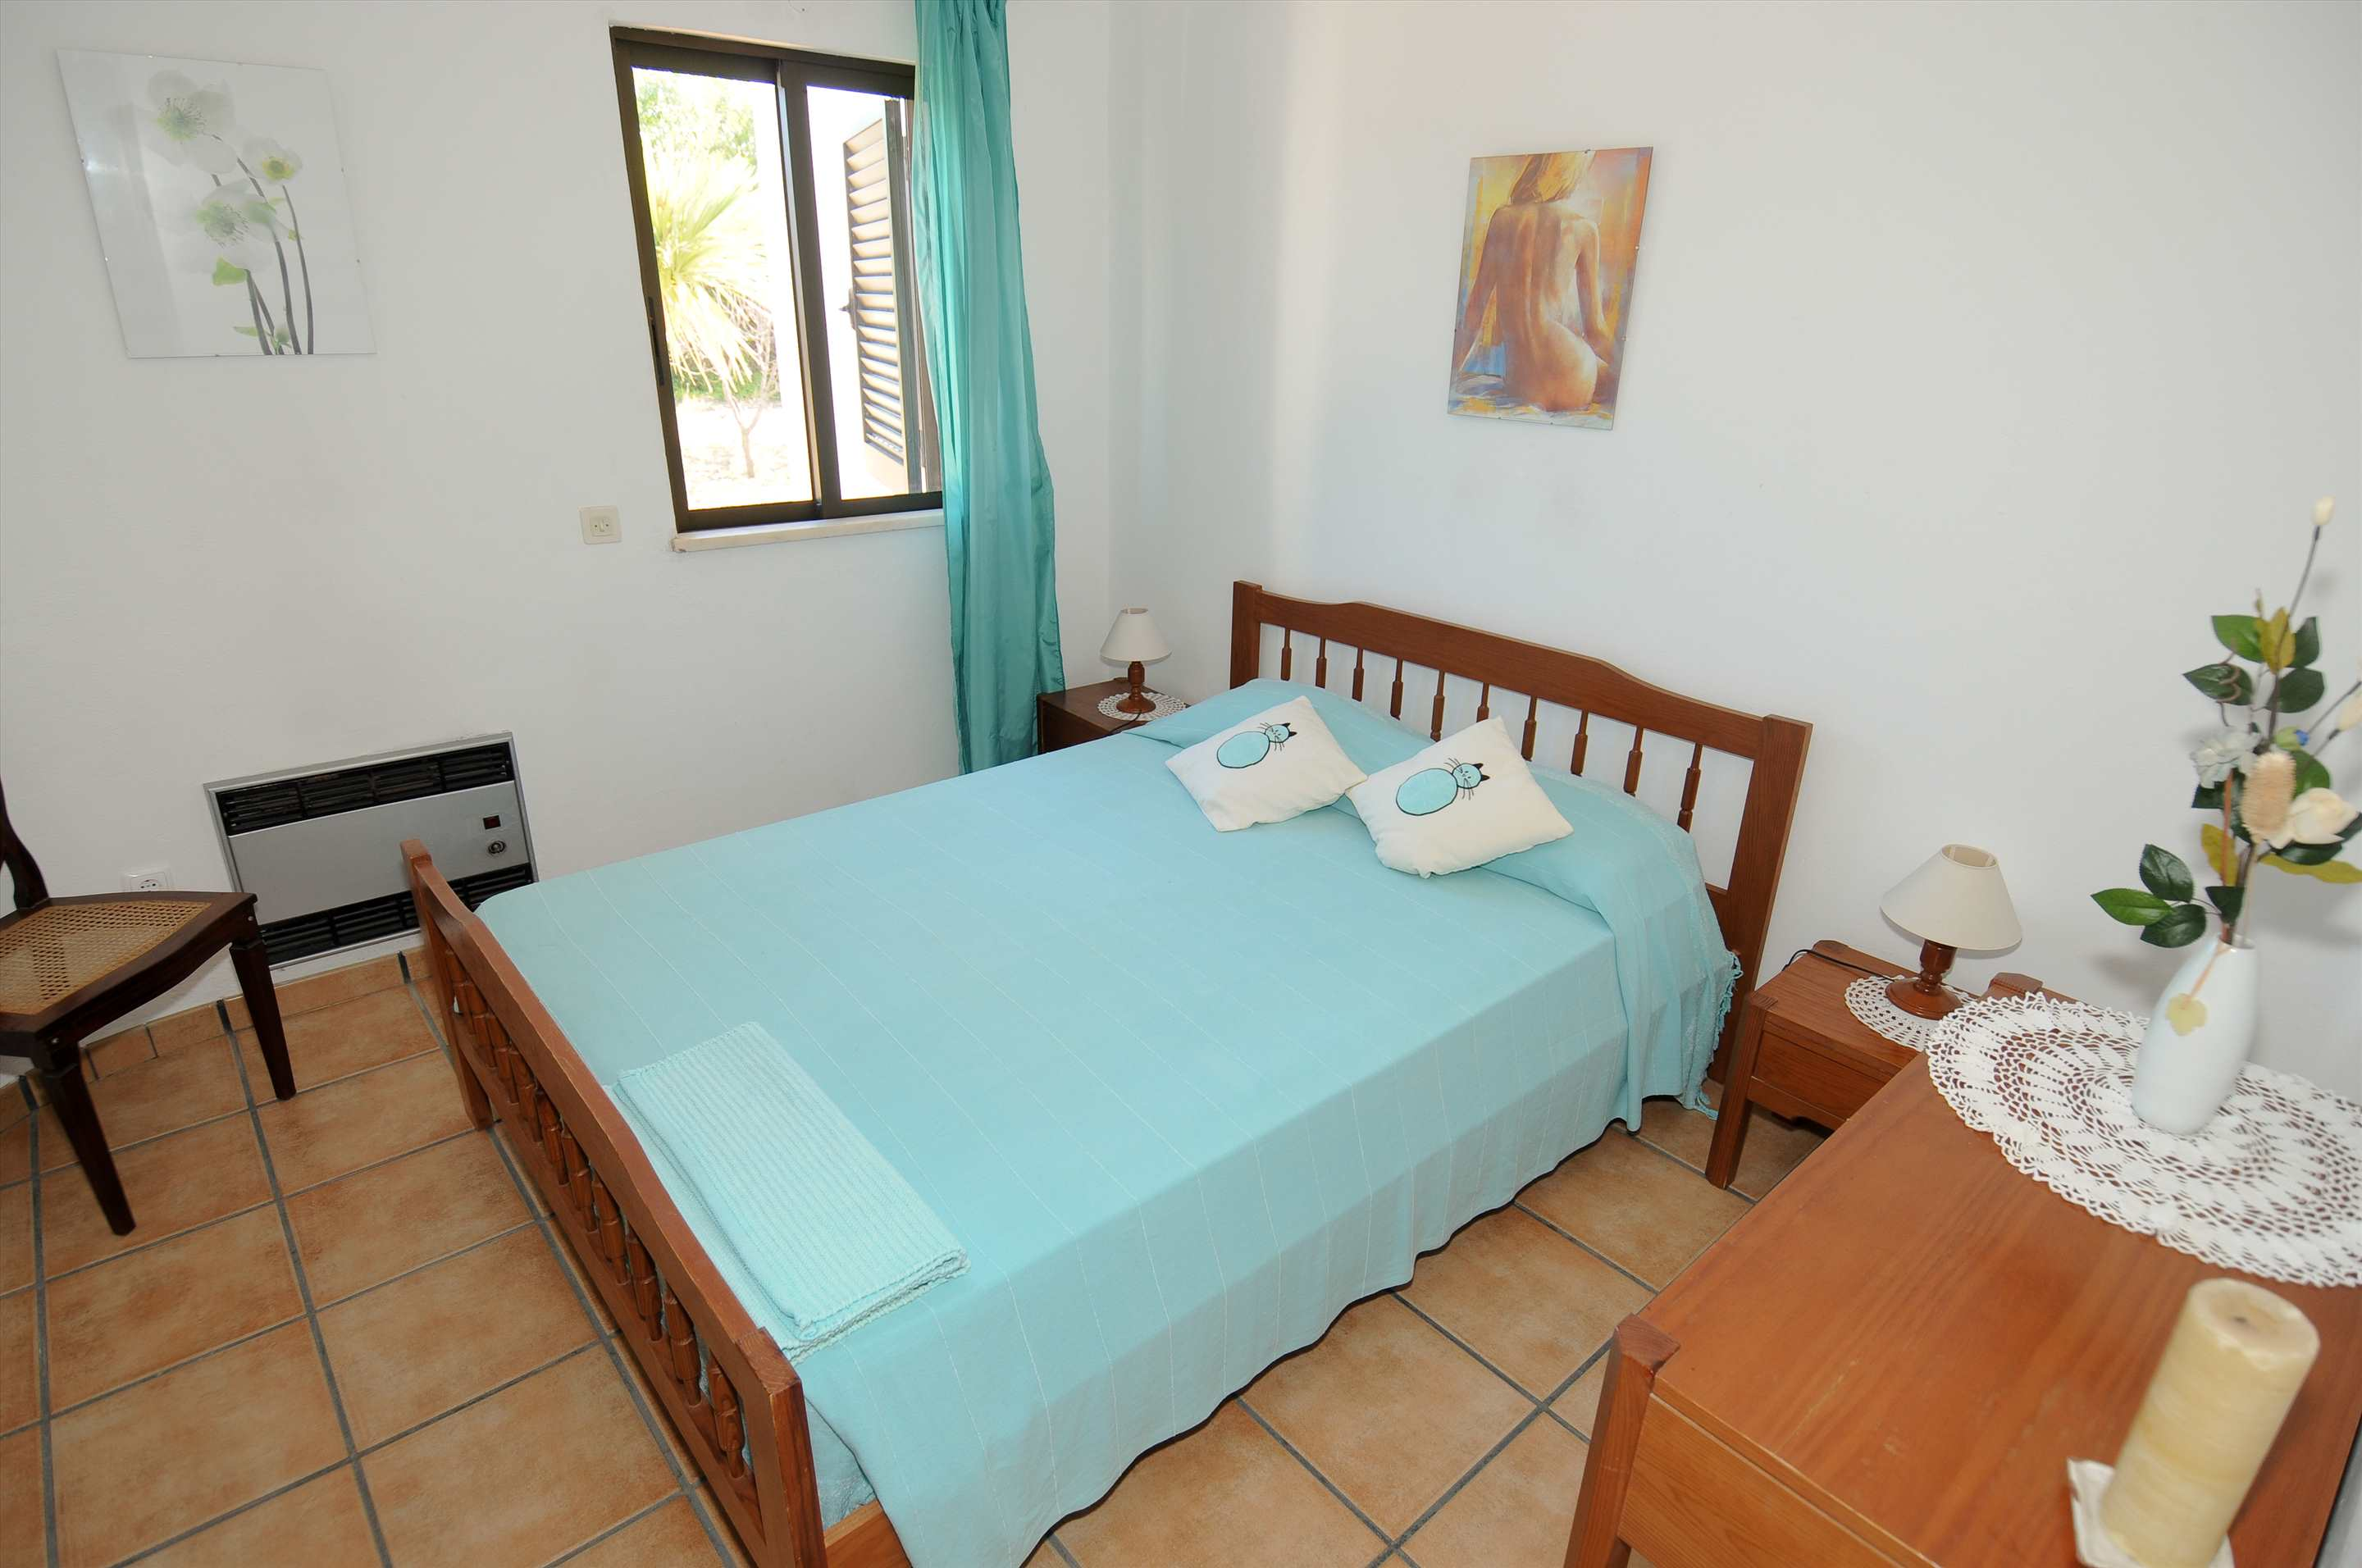 Casa Alexandra, 7-8 persons rate, 4 bedroom villa in Carvoeiro Area, Algarve Photo #9